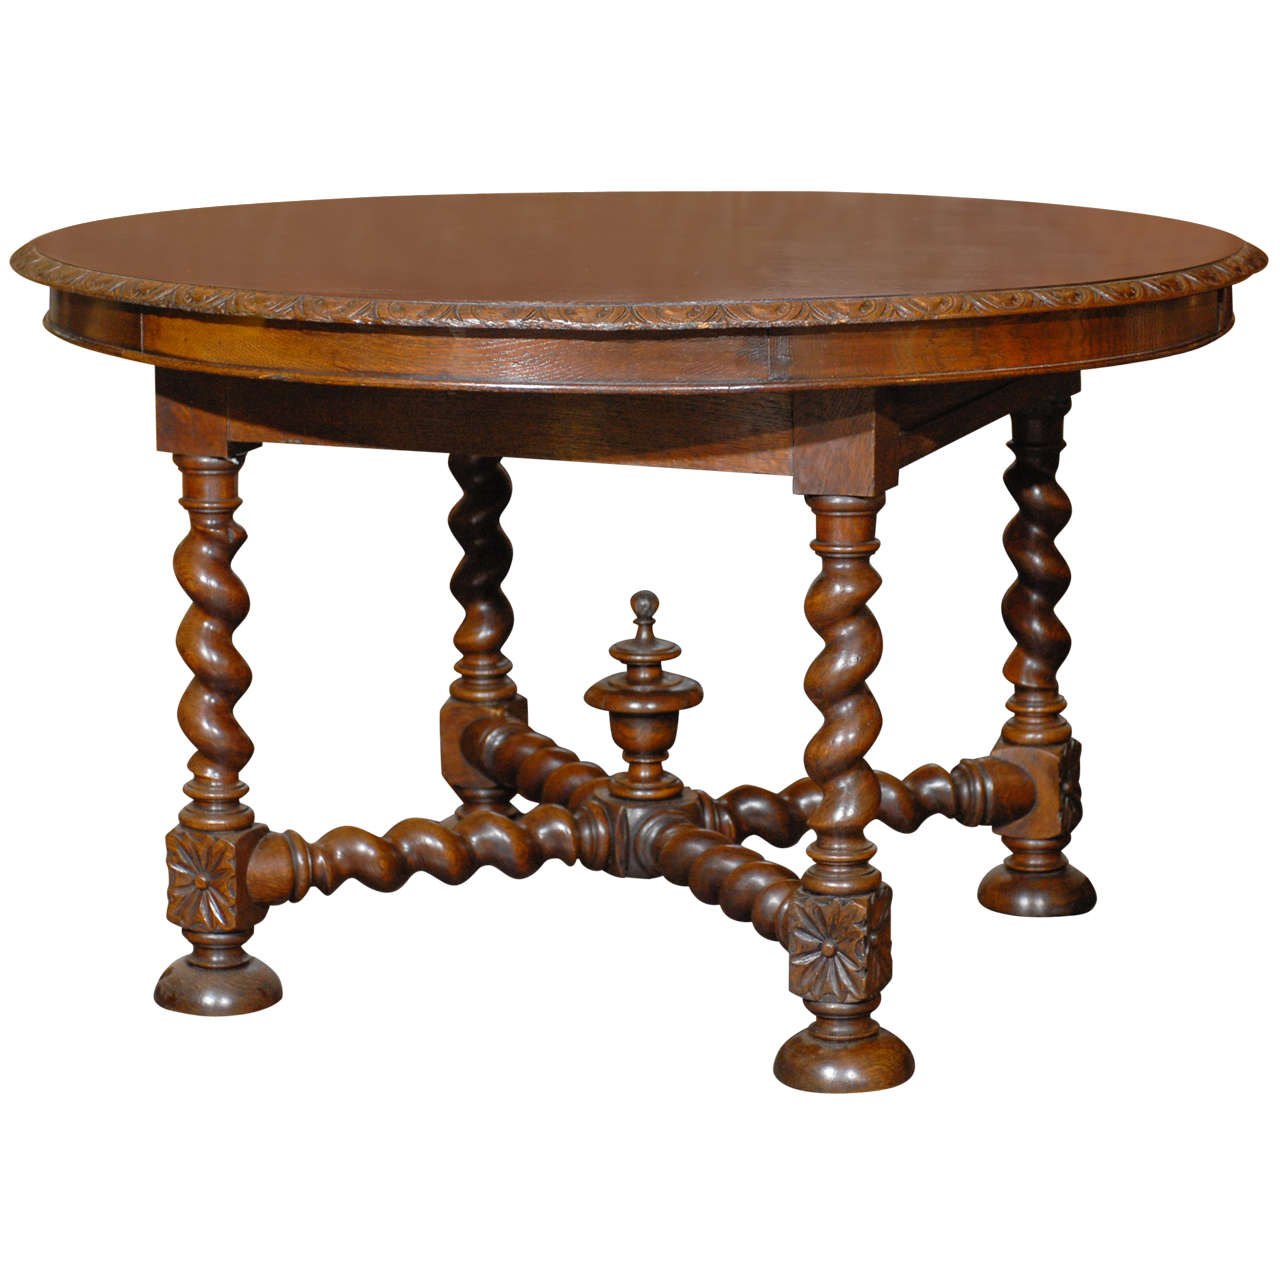 English round table with barley twist legs at 1stdibs for England table